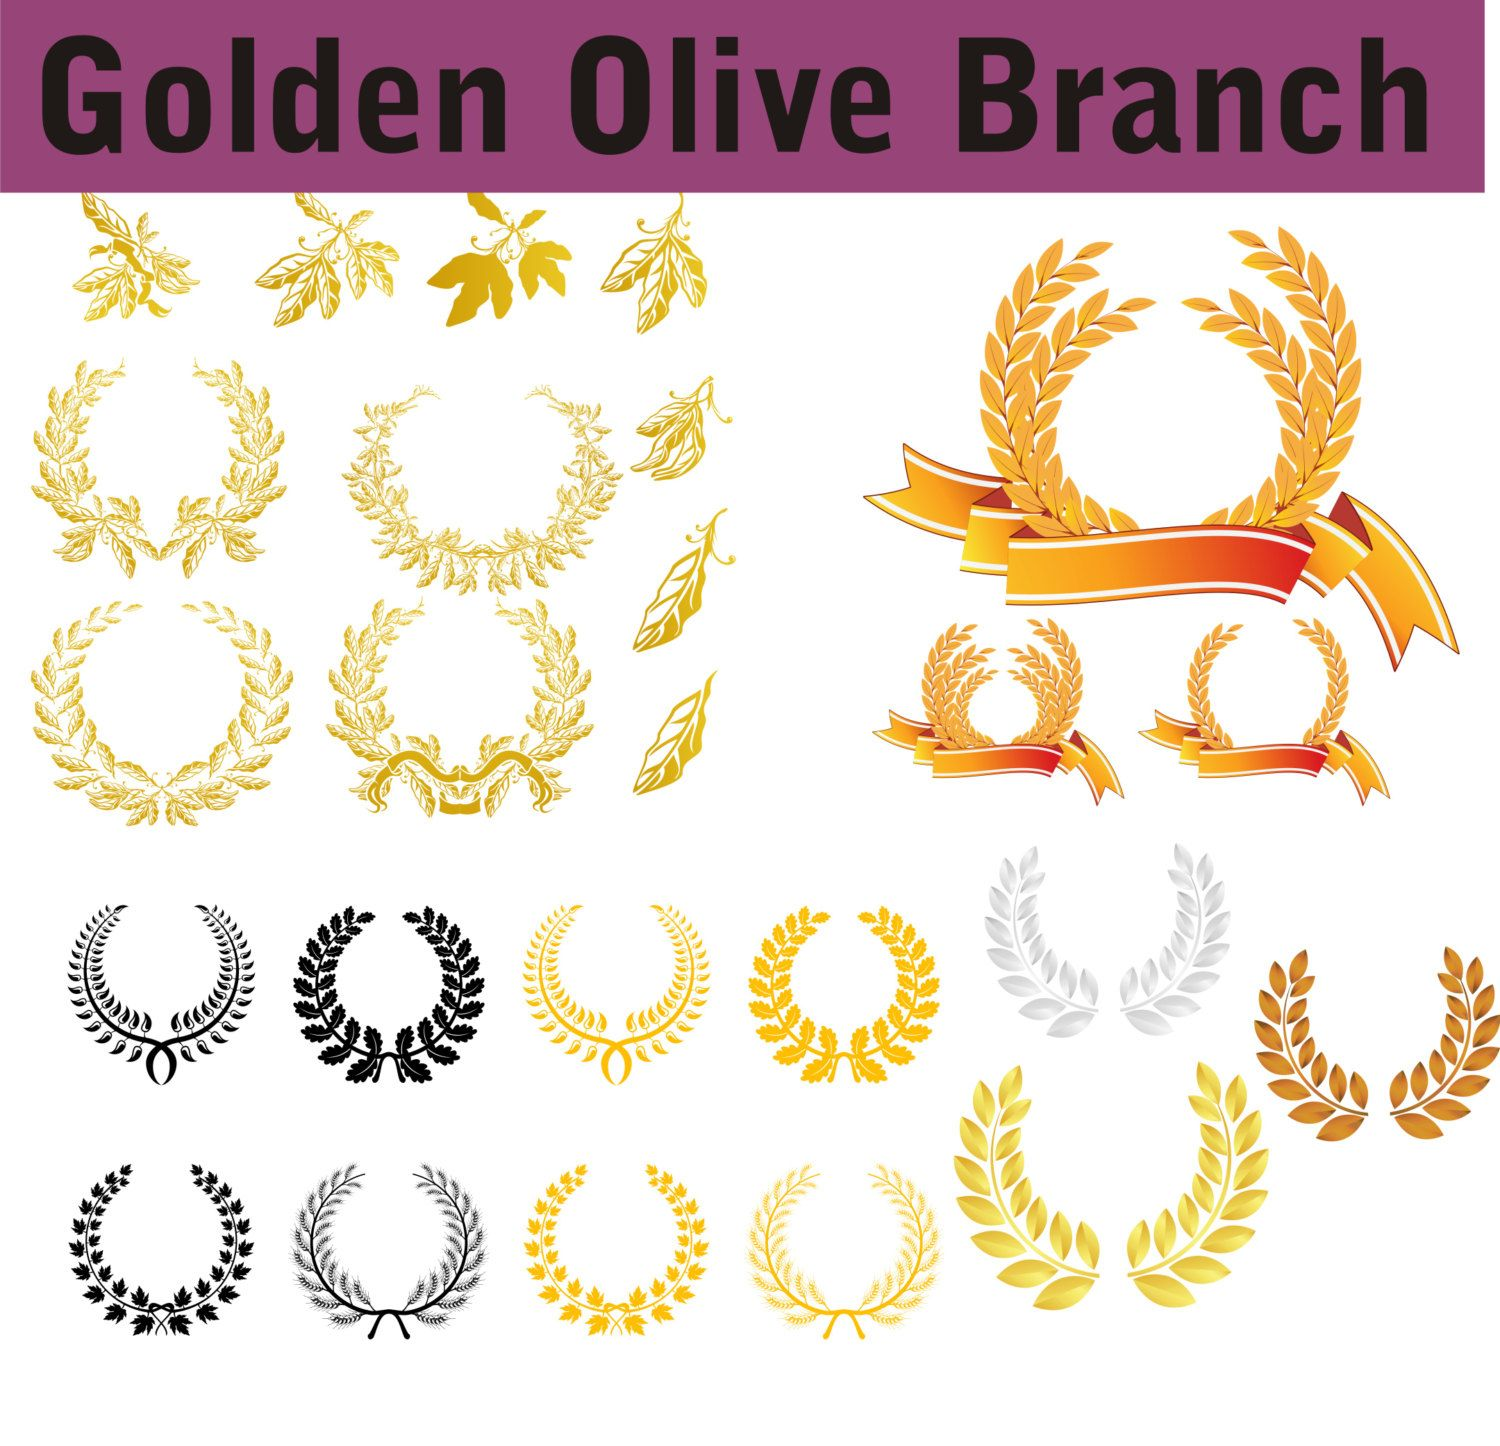 Golden Olive Branch Vector Eps Svg Digital Instant Download Clipart Clip Art Printable Party Items Decorations Birthday Branch Vector Olive Branch Party Items